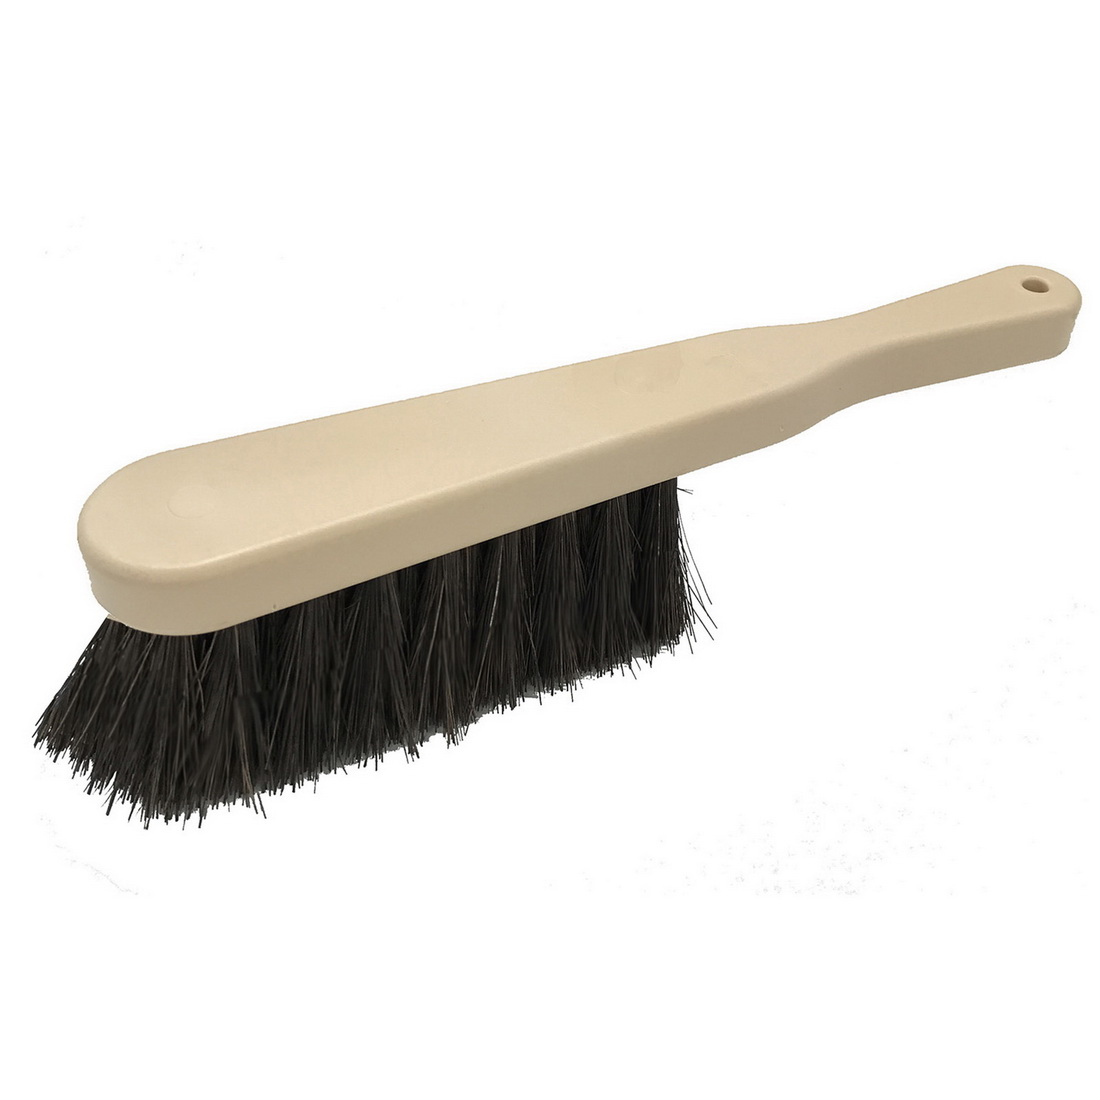 Raven Hearth Brush 8041